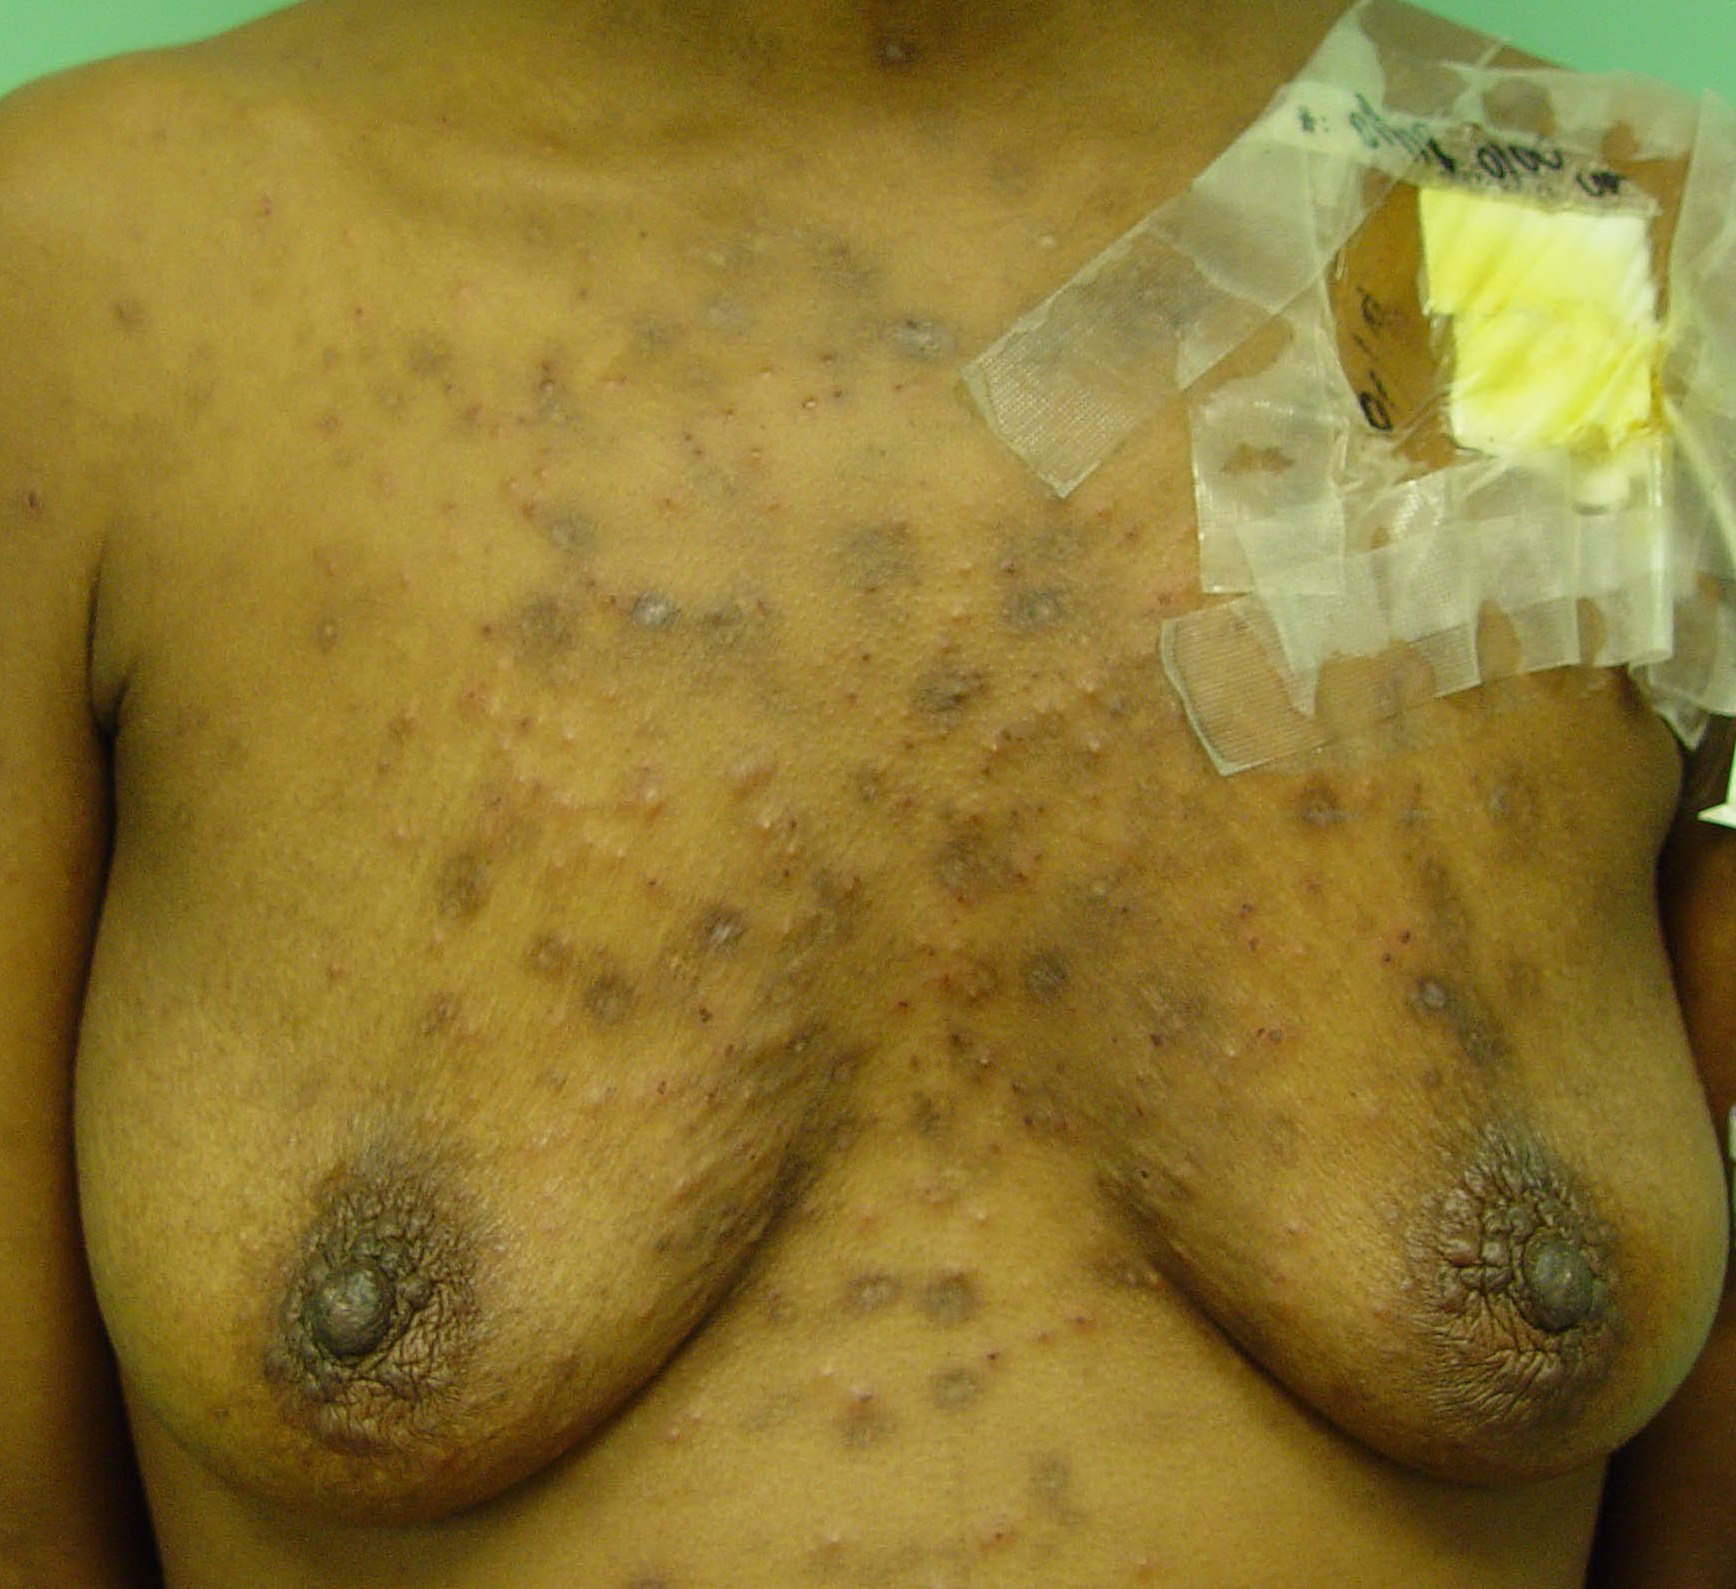 Pin Eosinophilic Pustular Folliculitis Disease Pictures on ...